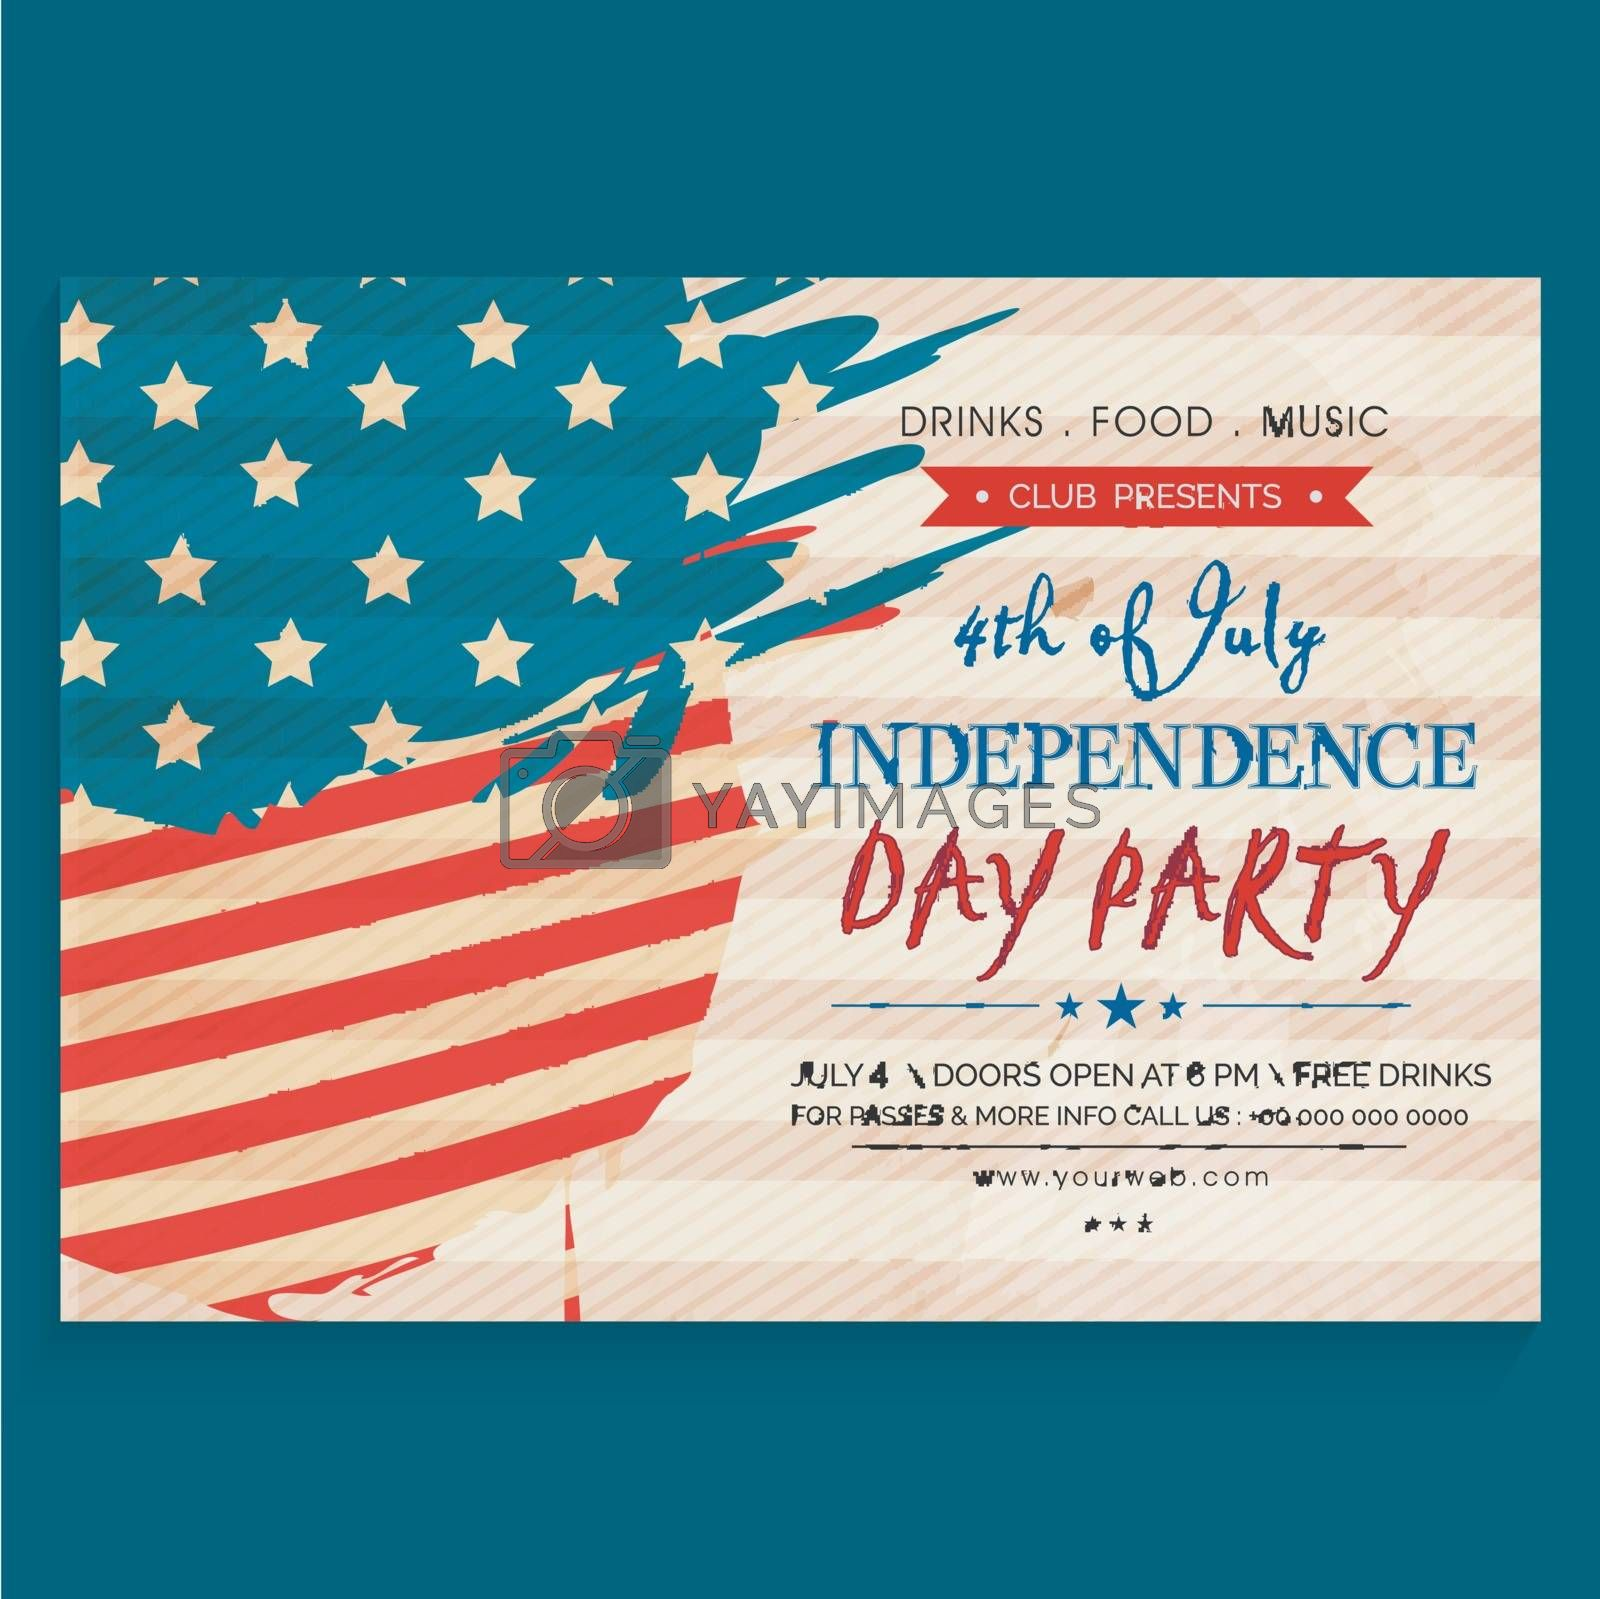 4th of July, American Independence Day Party celebration Invitation Card design in vintage style.